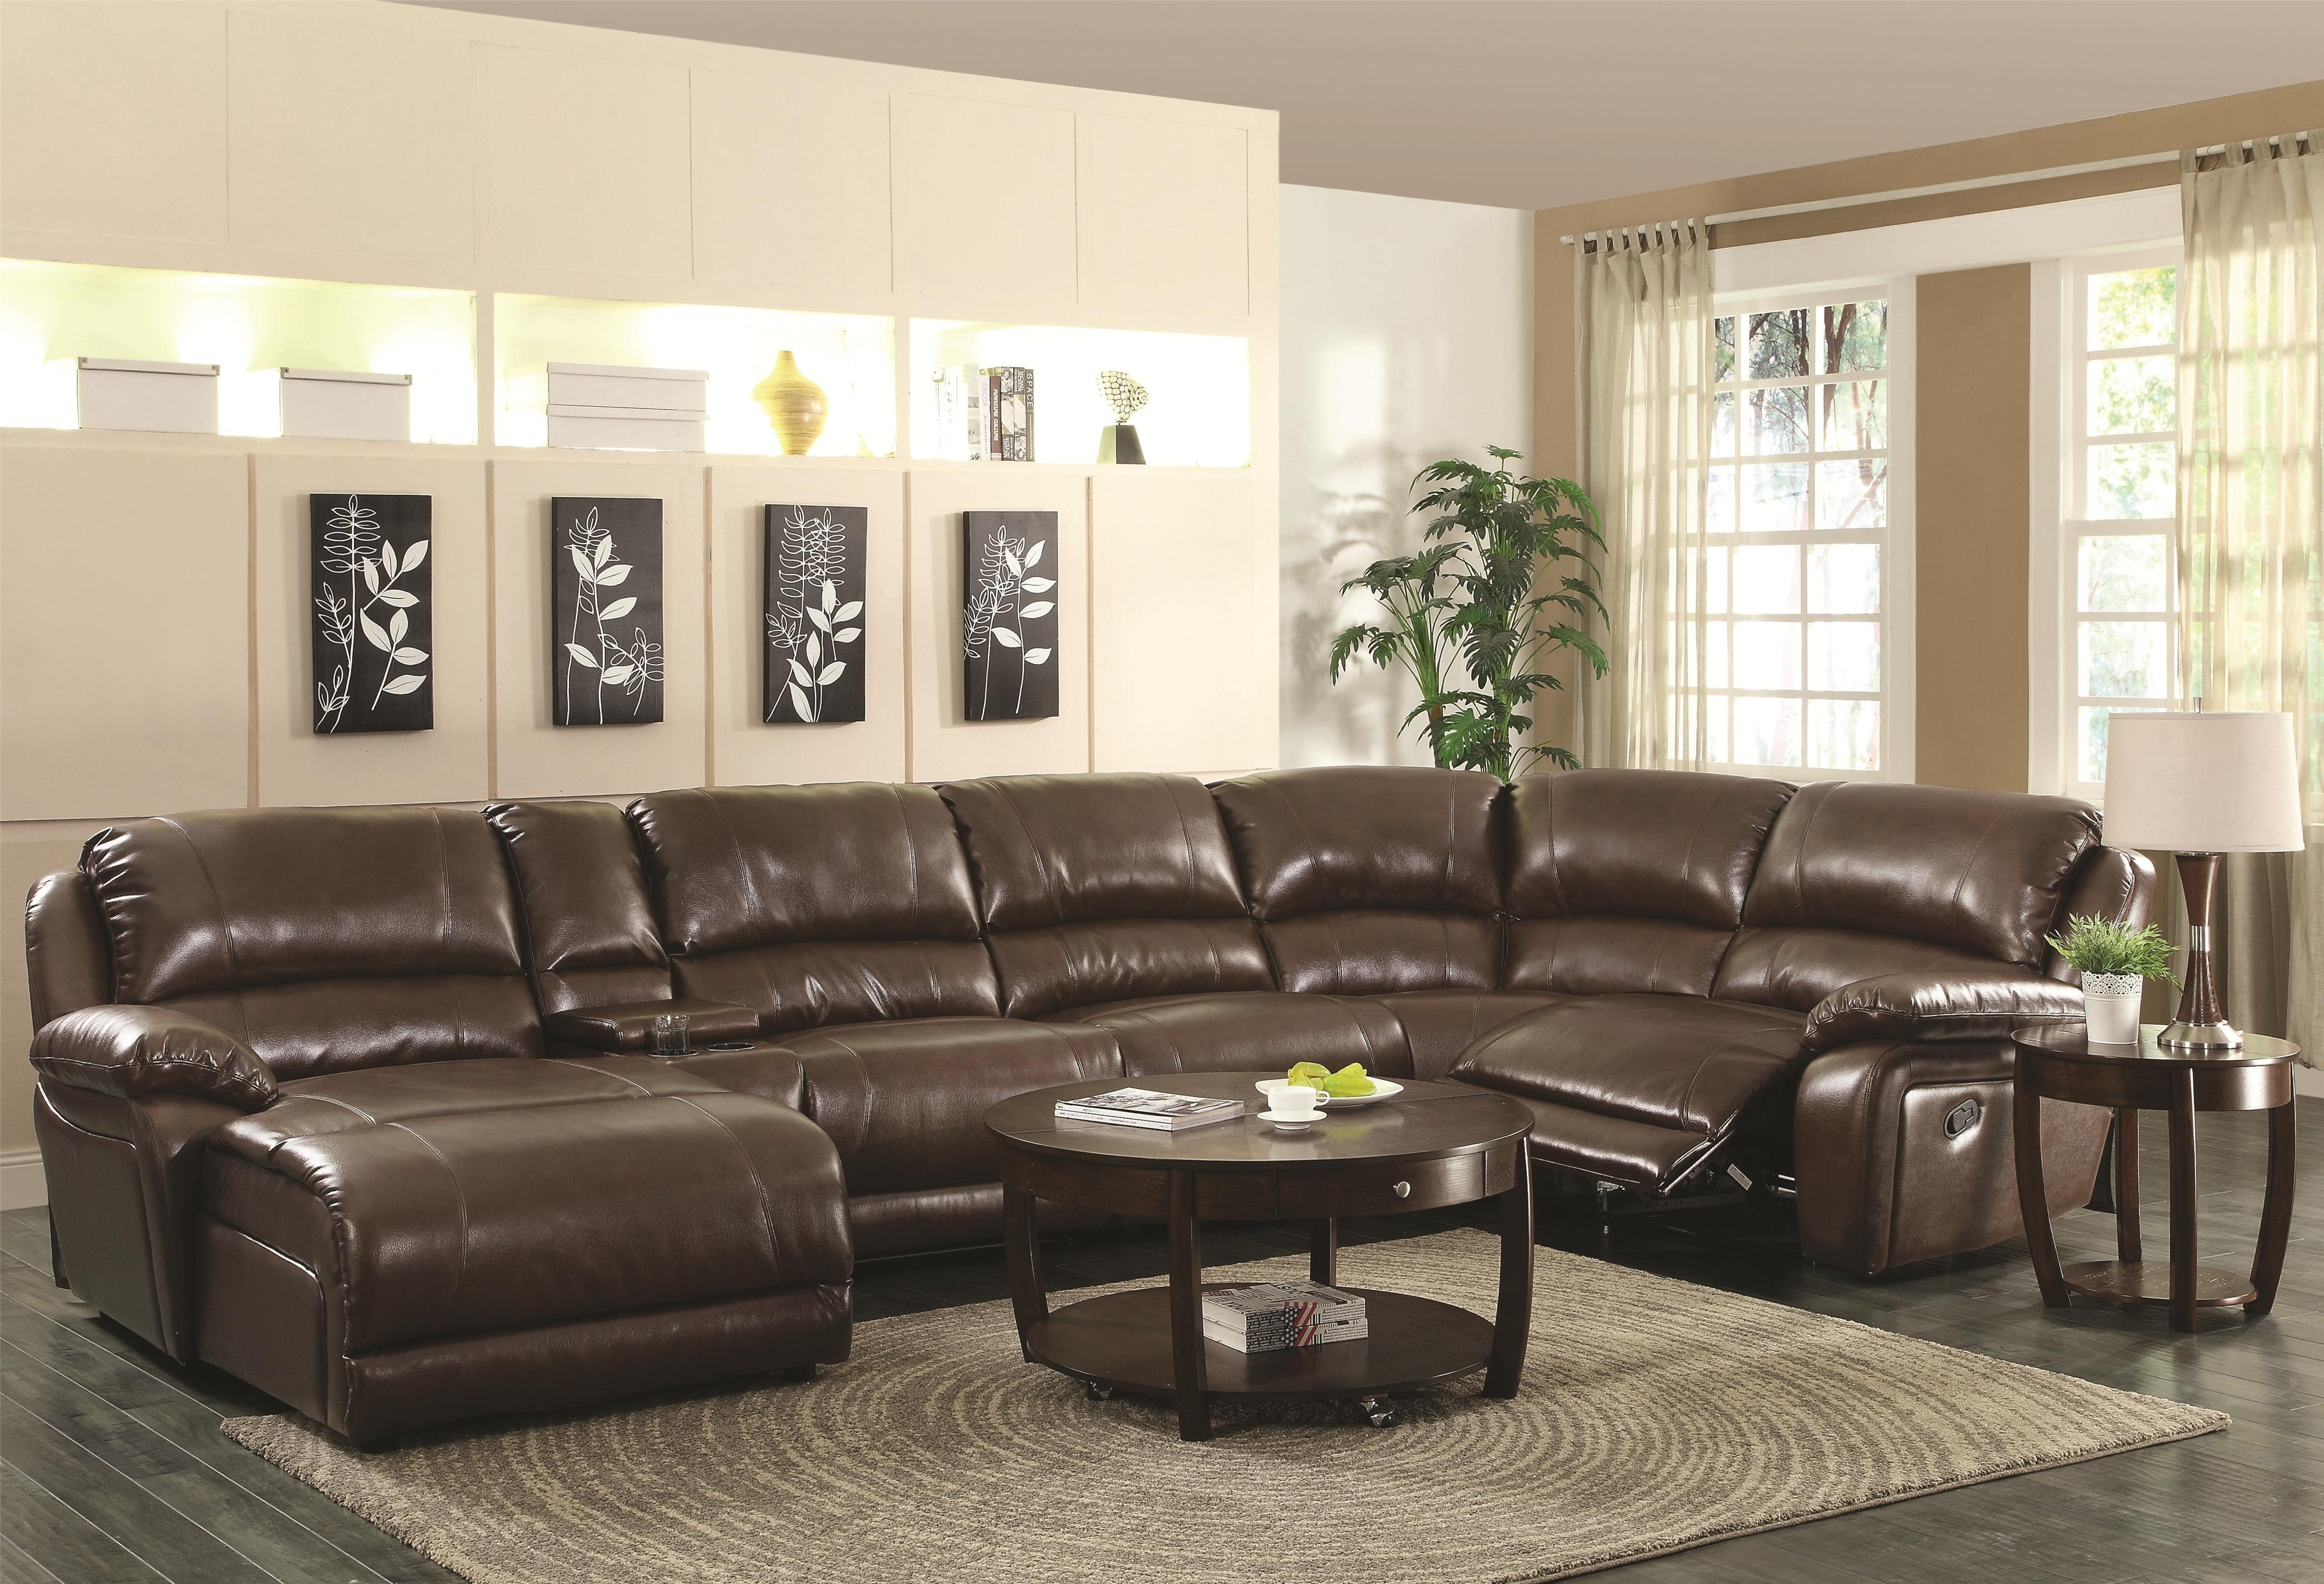 Leather Sectional With Chaise Lounge – Acwc Intended For Clyde Grey Leather 3 Piece Power Reclining Sectionals With Pwr Hdrst & Usb (View 19 of 30)